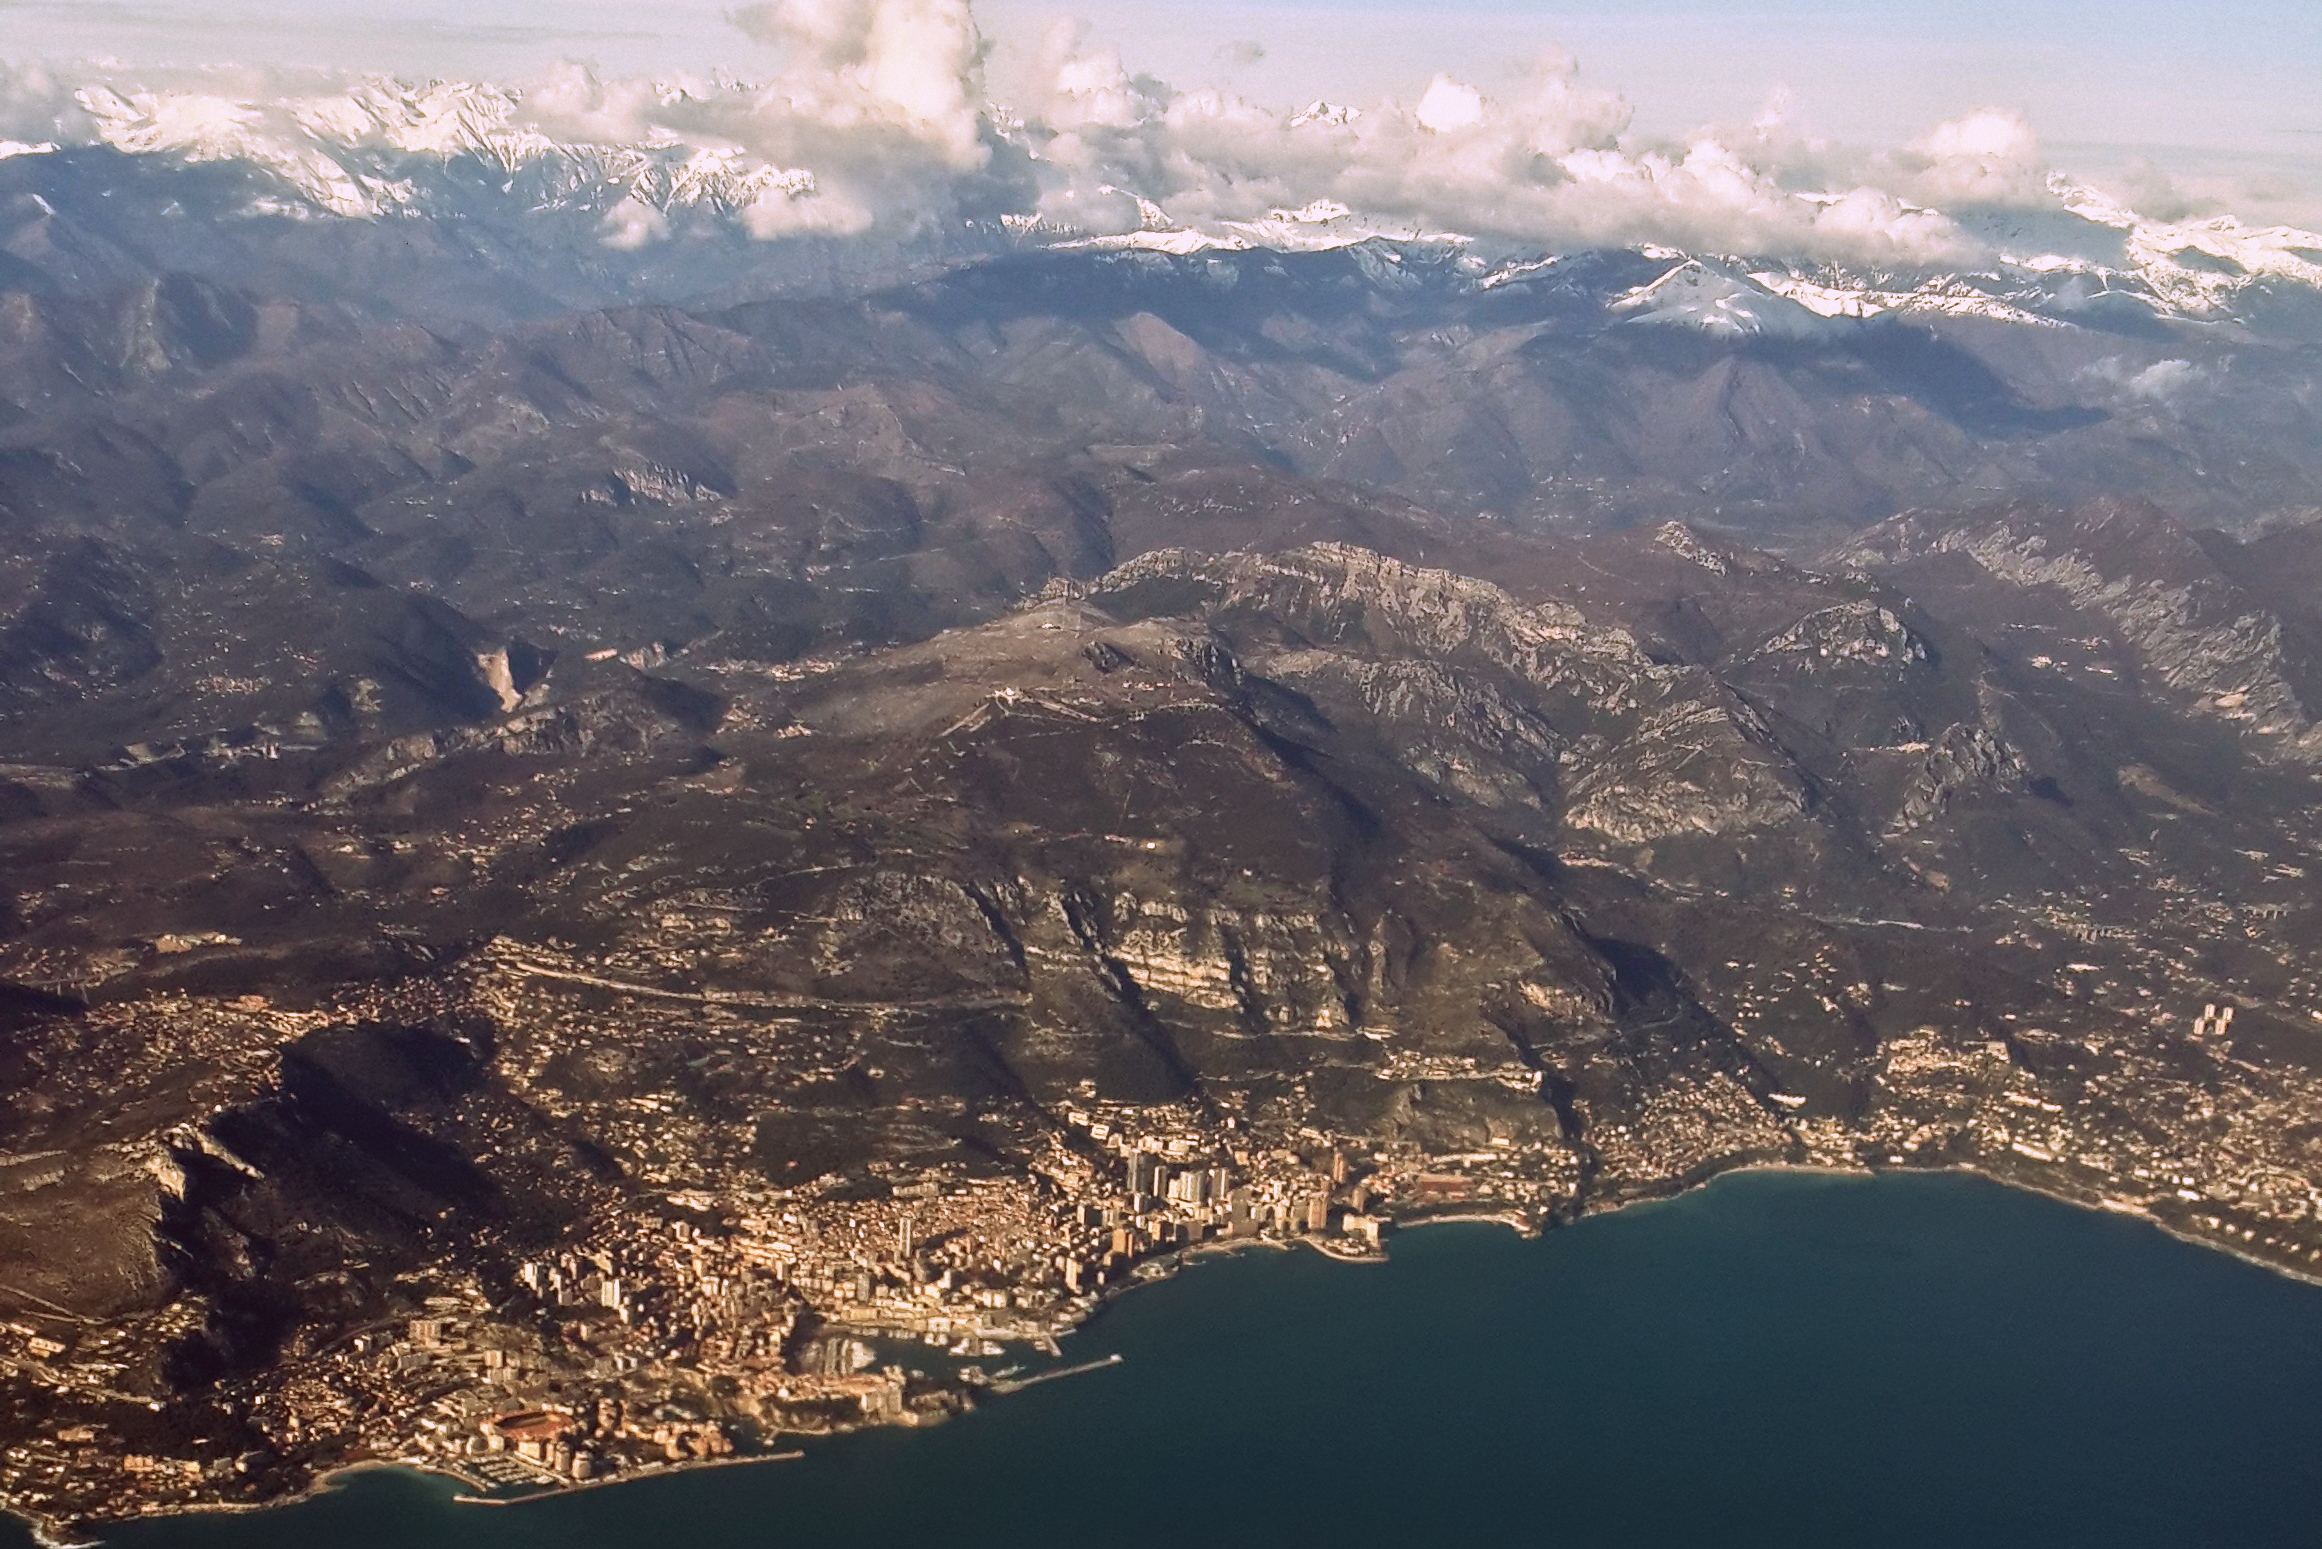 A view of Monaco from above